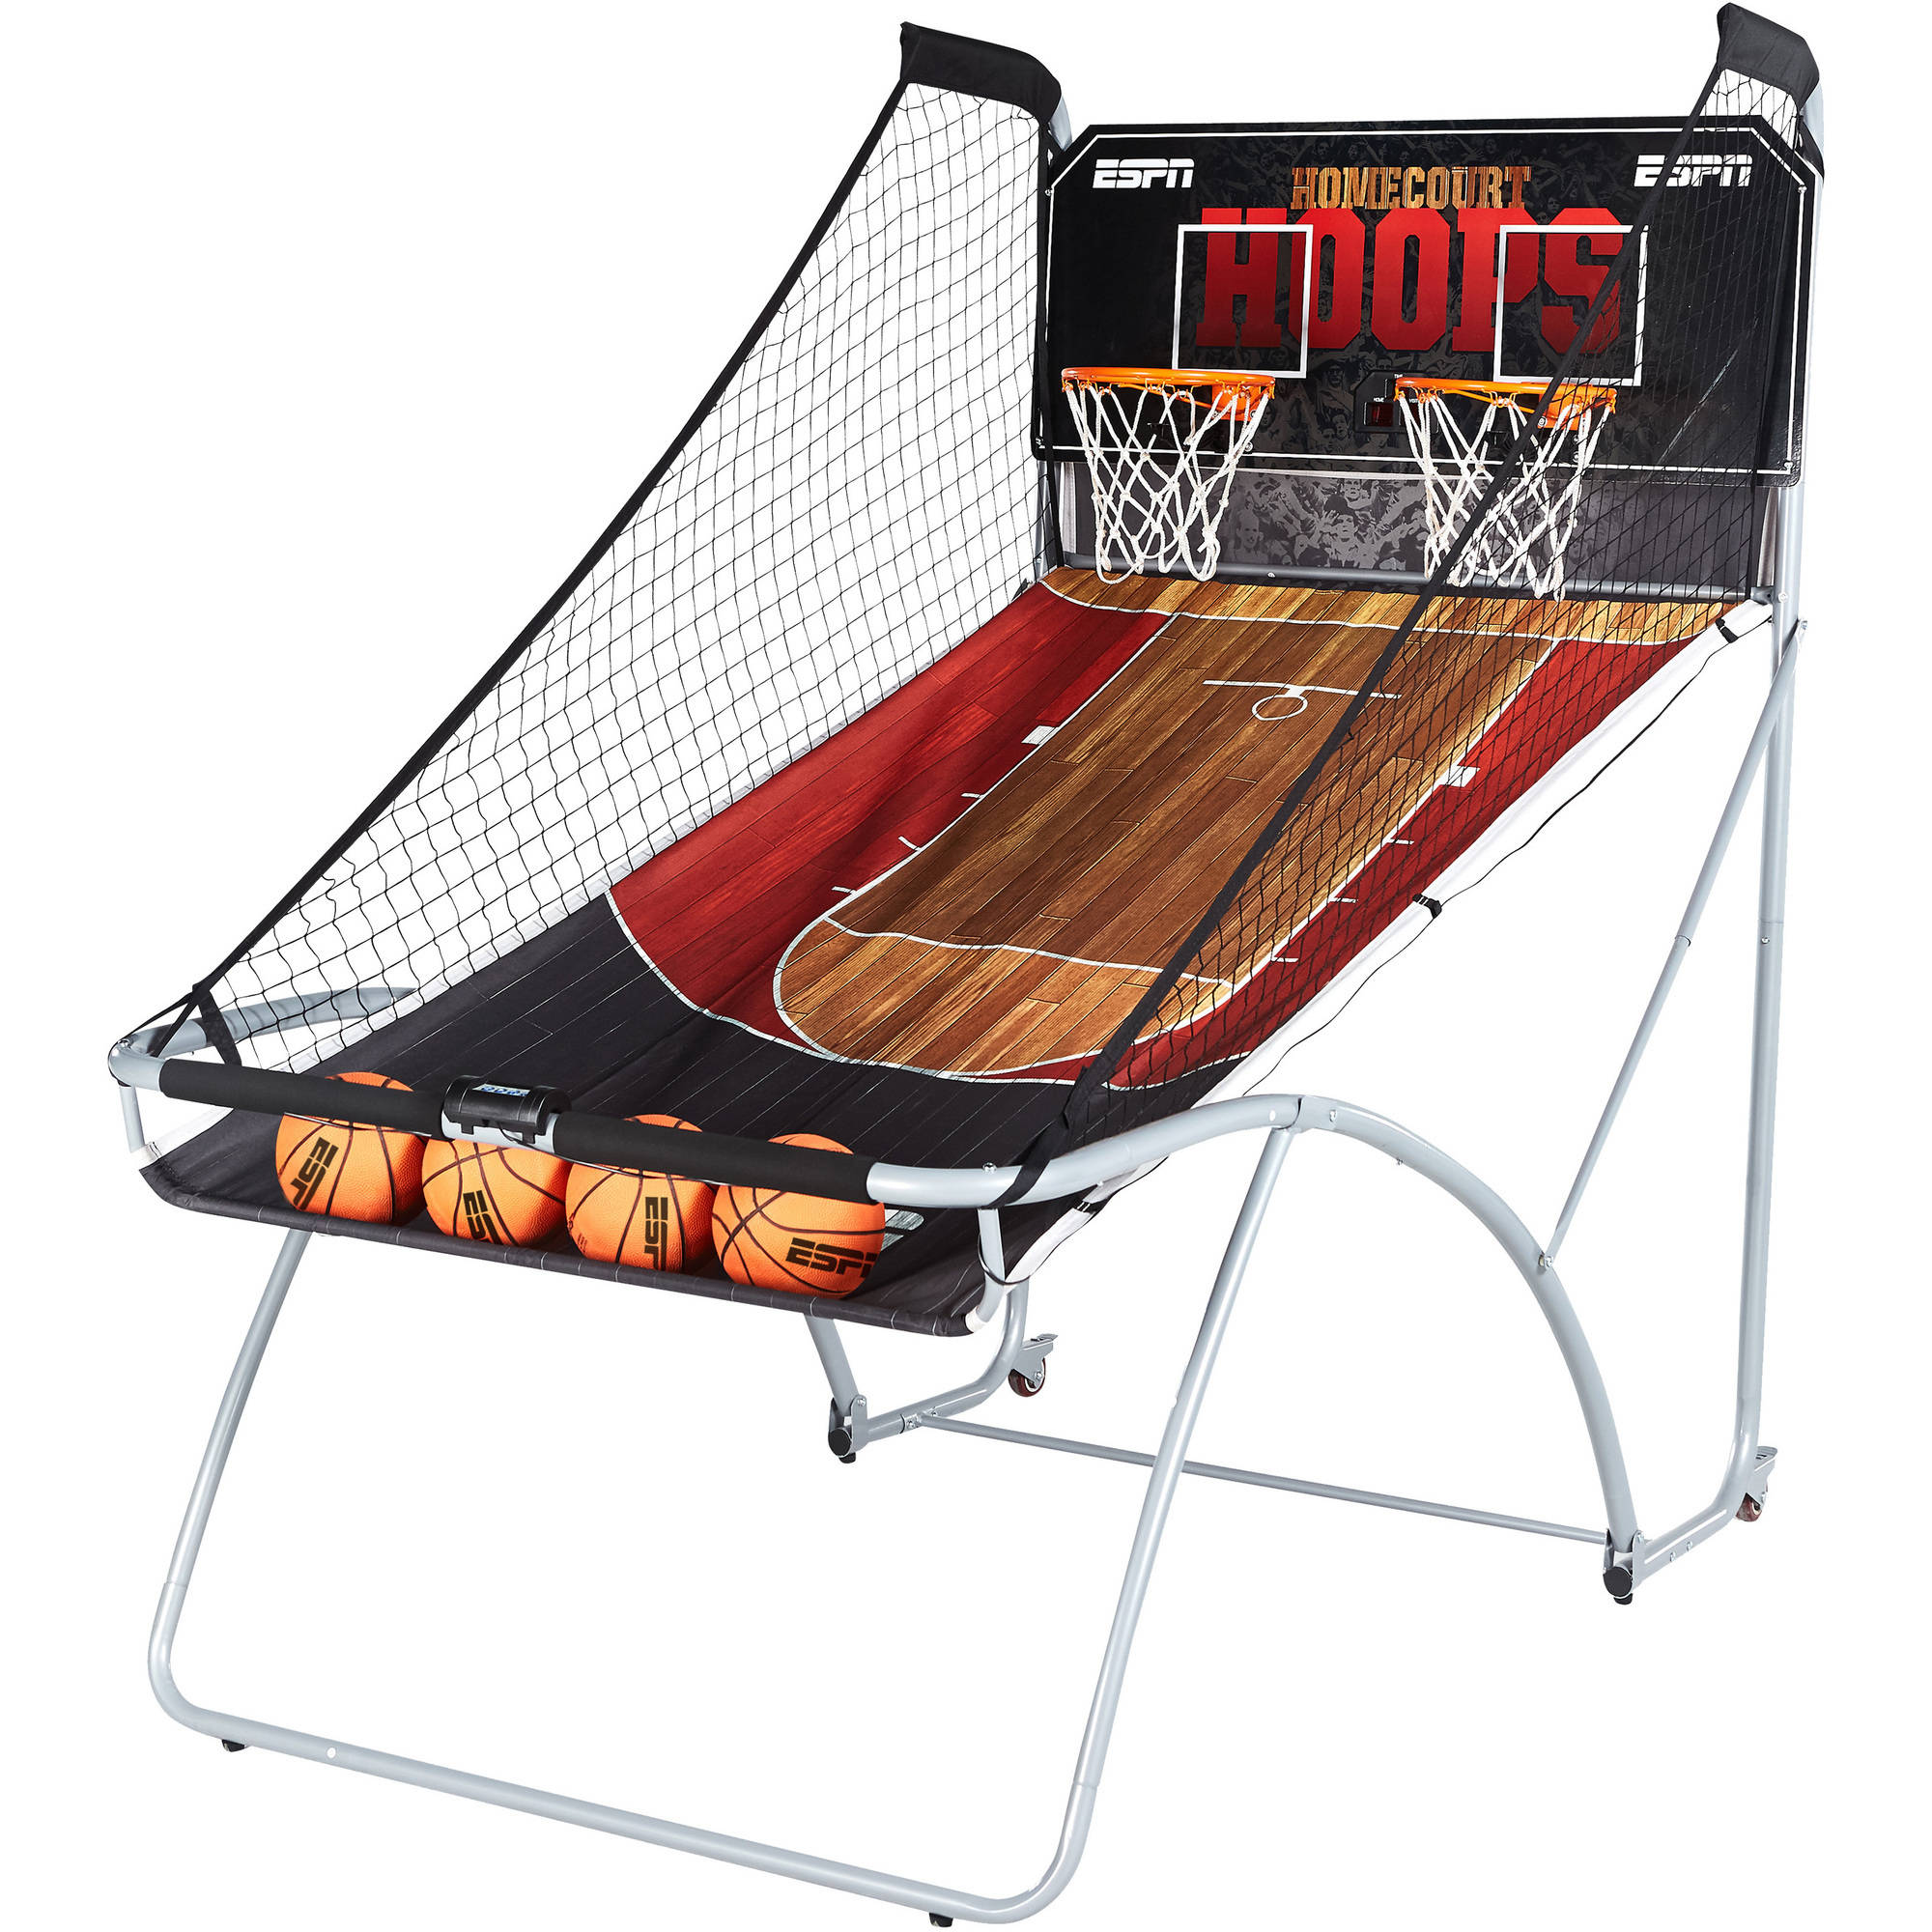 """ESPN EZ-Fold 2-Player Basketball Game with 4 basketballs and 1 air pump, 81""""L x 48""""W x 80.5""""H, Black/Red"""